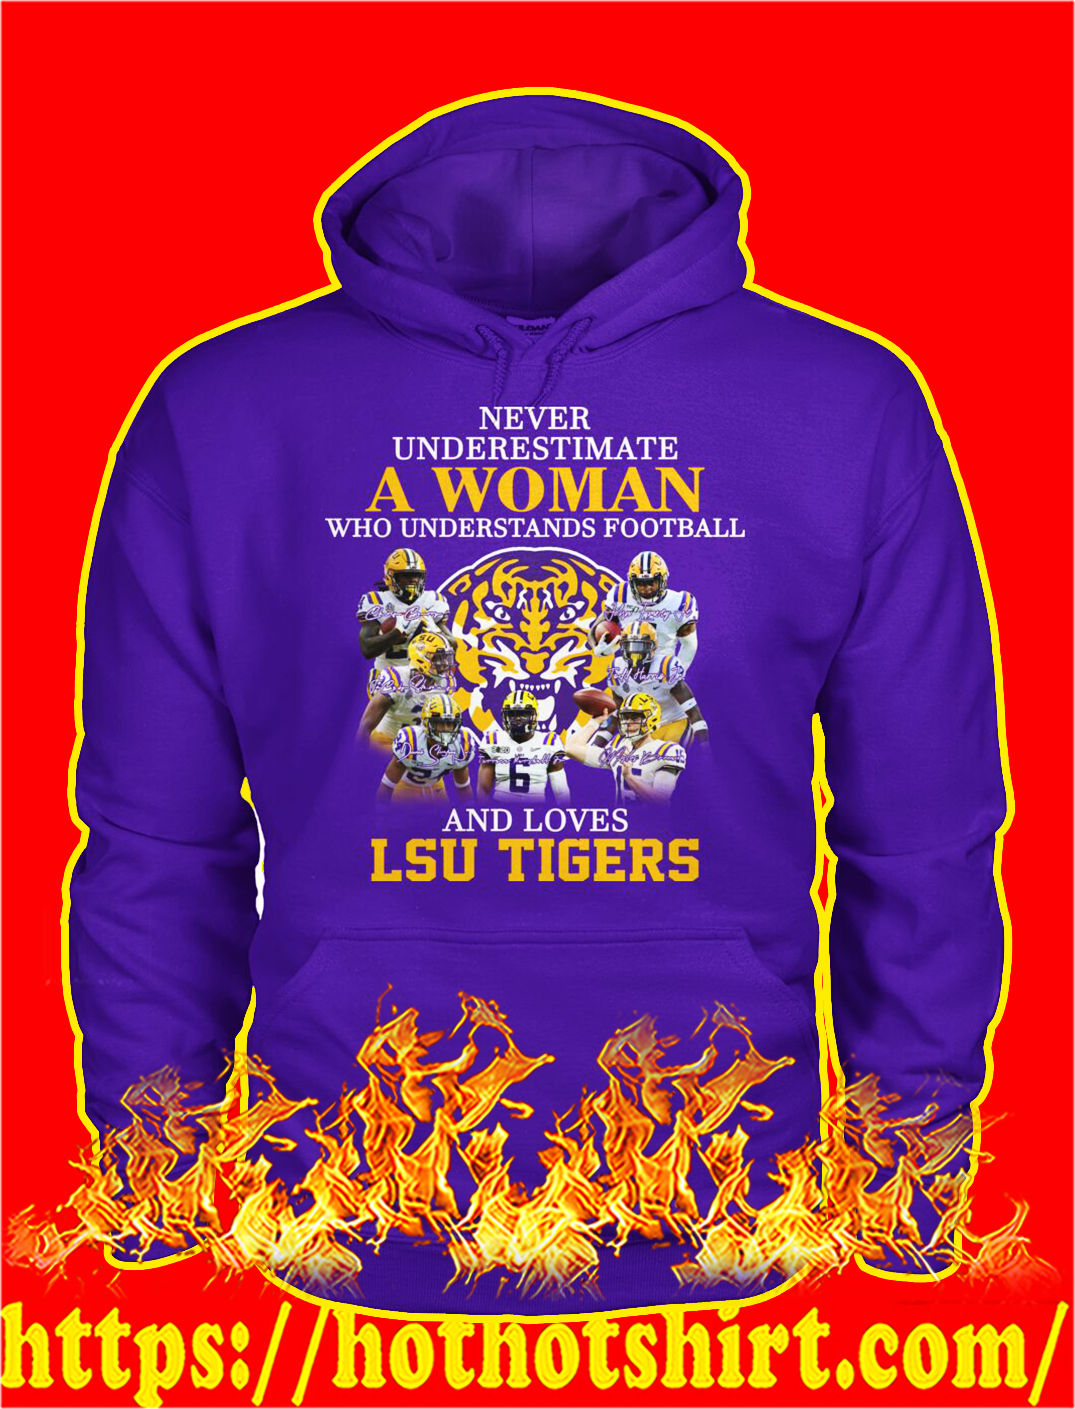 Never underestimate a woman understands football and loves lsu tigers hoodie